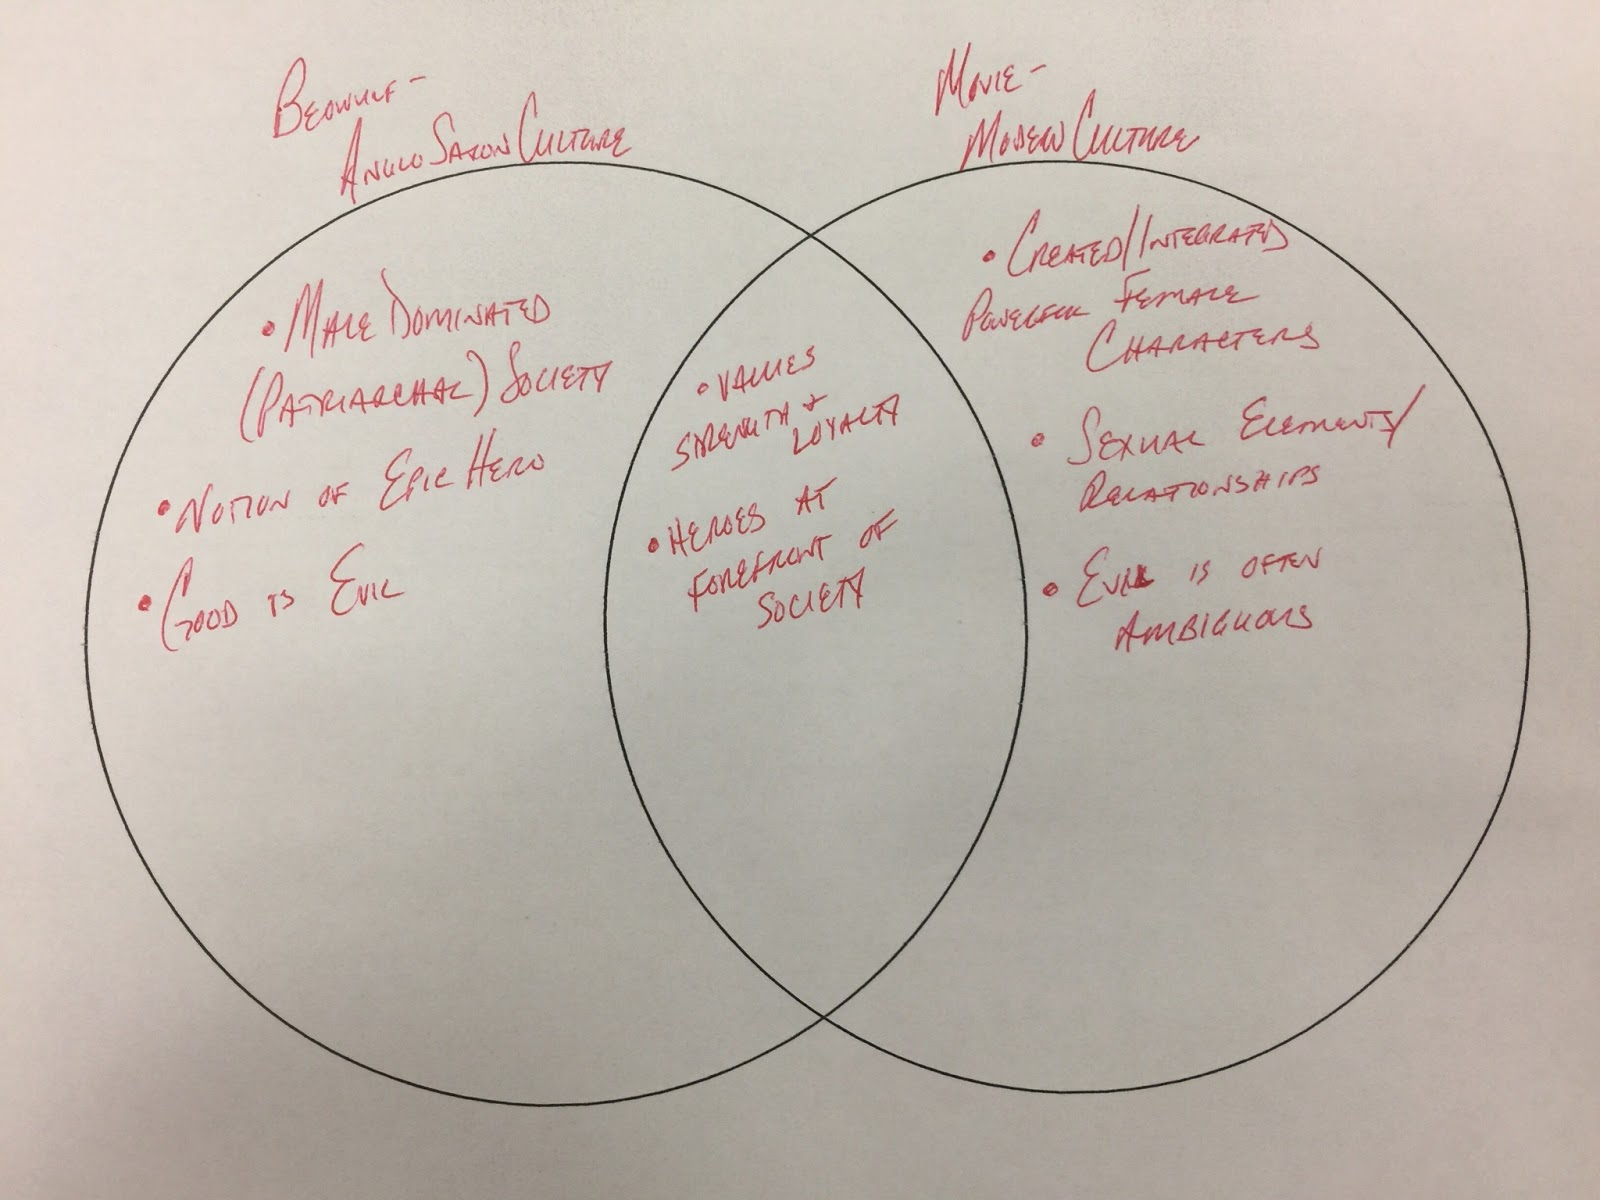 Compare And Contrast Star Wars Vs Star Tr Essays